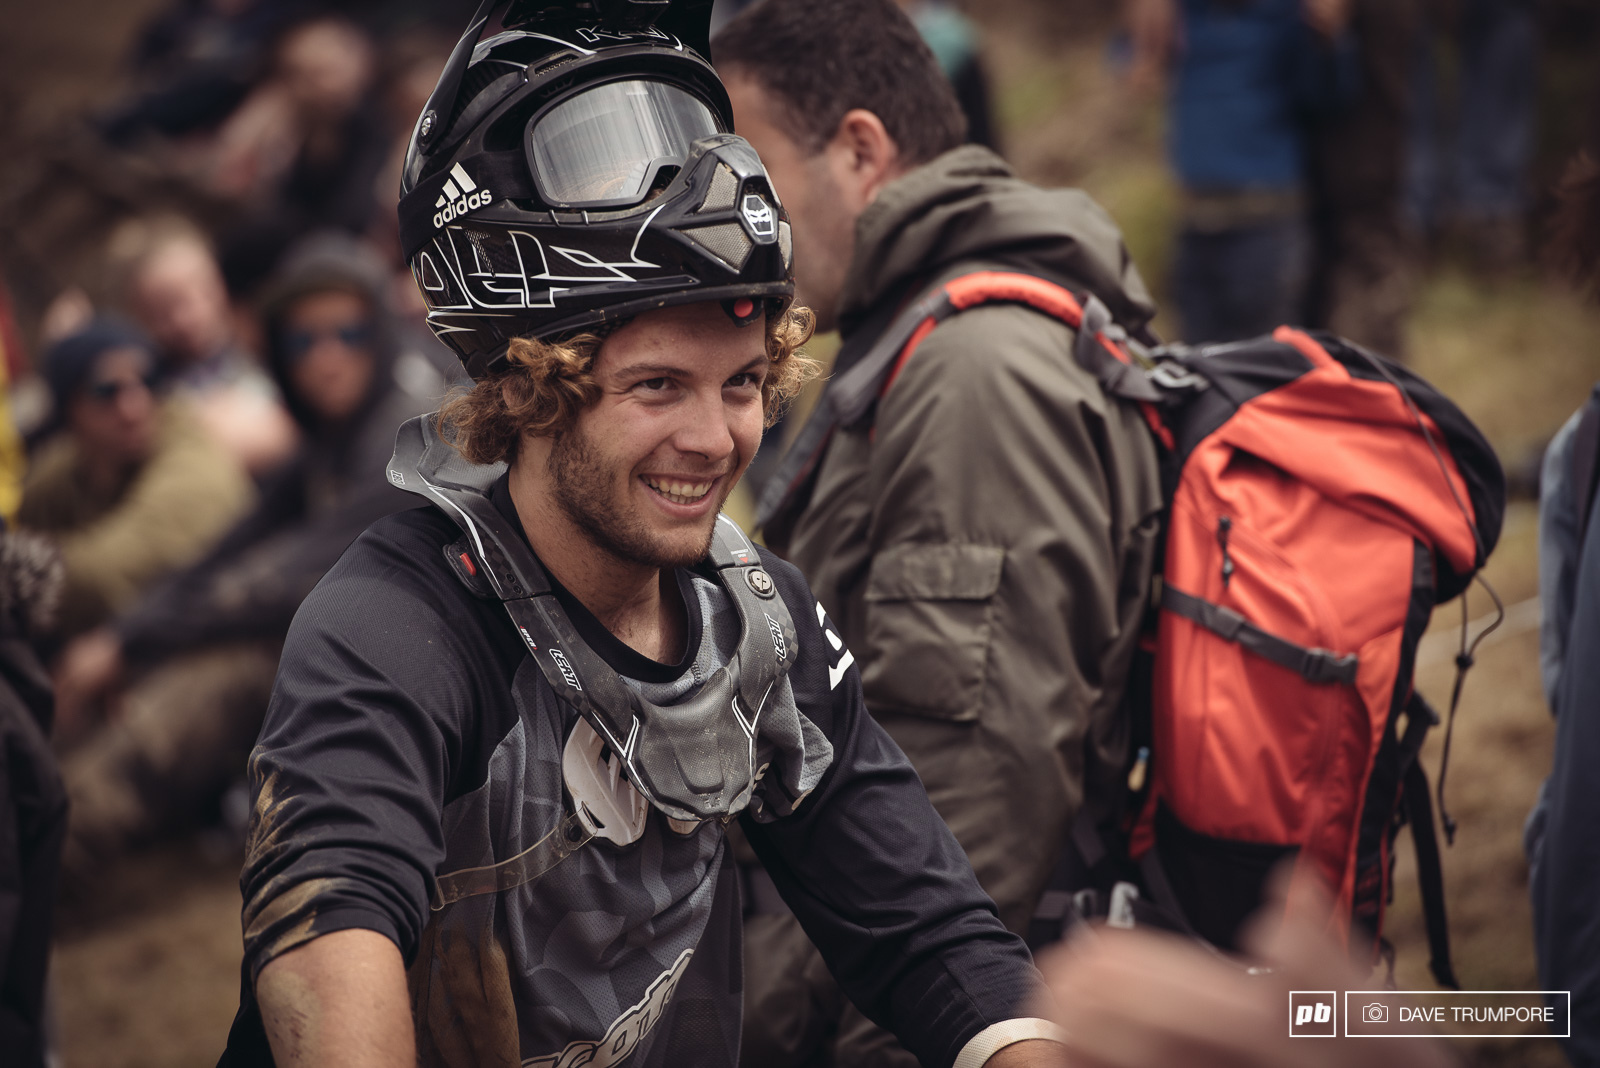 Antoine Bizet all smiles when he finally stuck his best trick after a few hard slams.